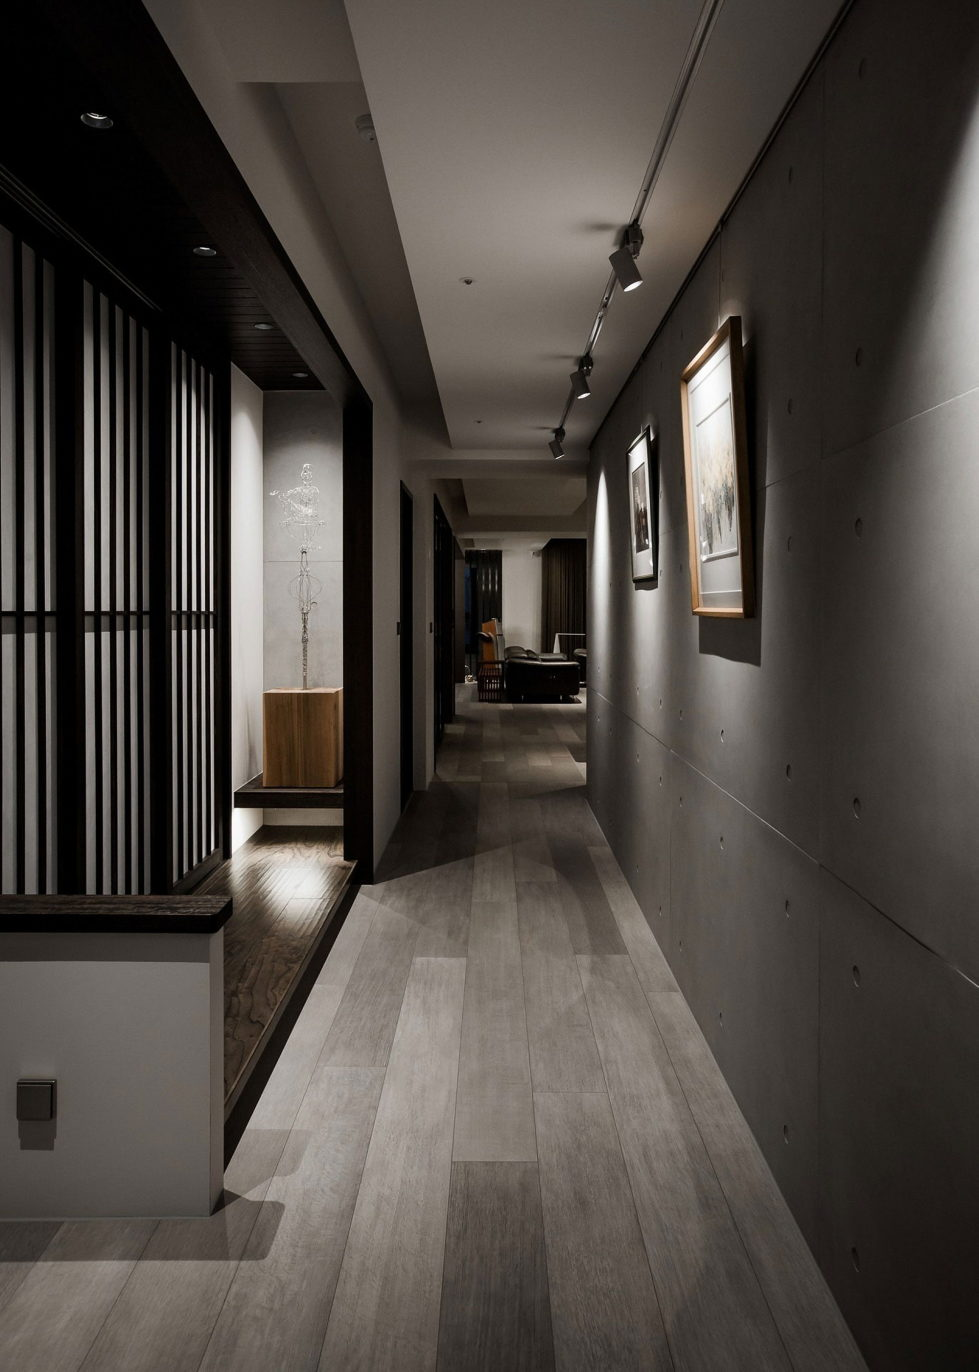 The Wang House Apartment In Taiwan Upon The Project Of The PM Design Studio 46